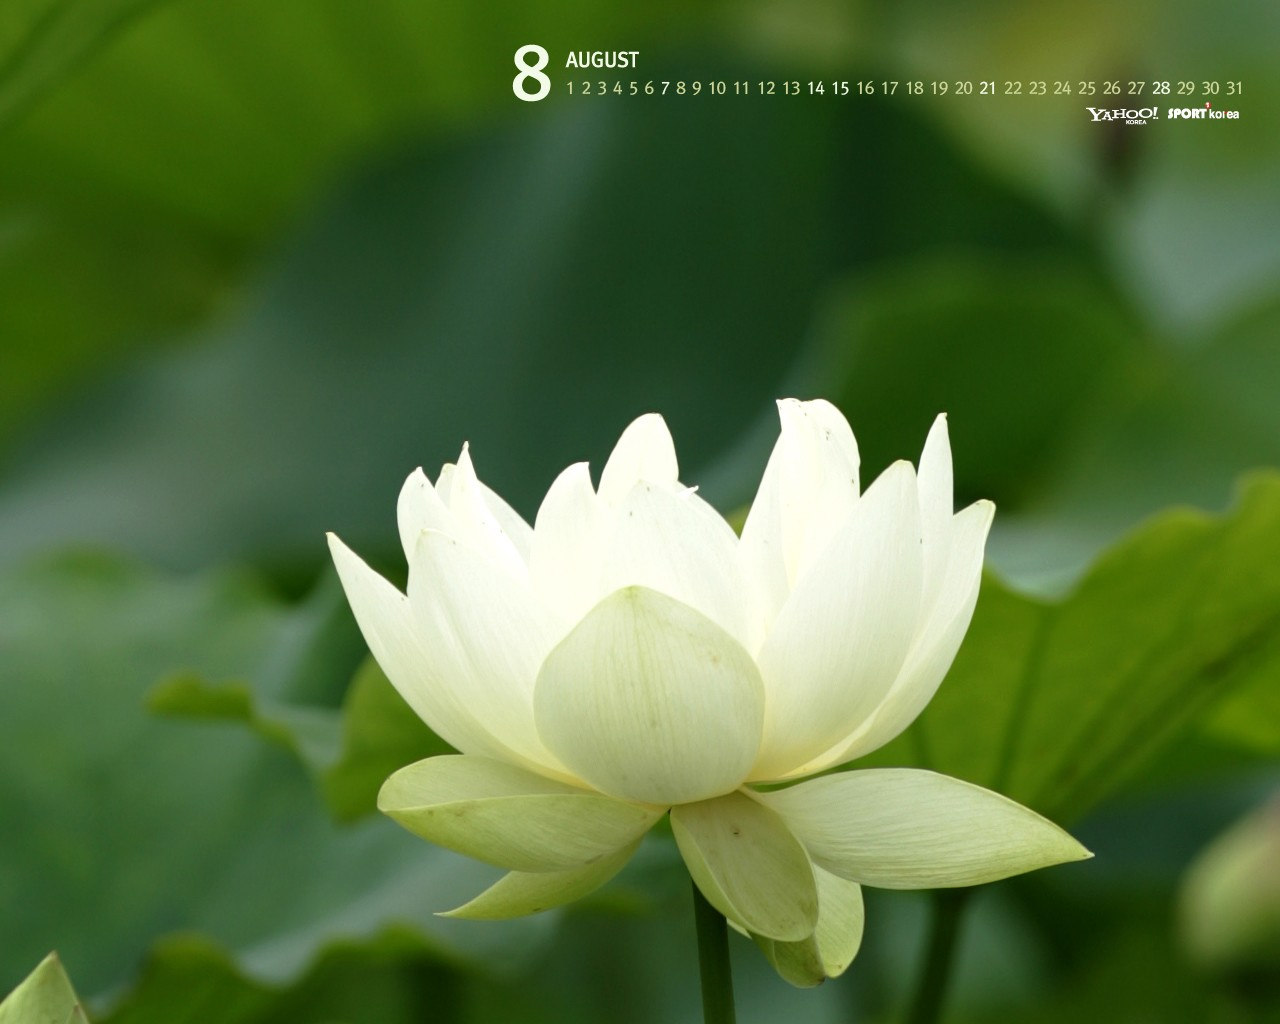 South Korea August Calendar Wallpaper 29821